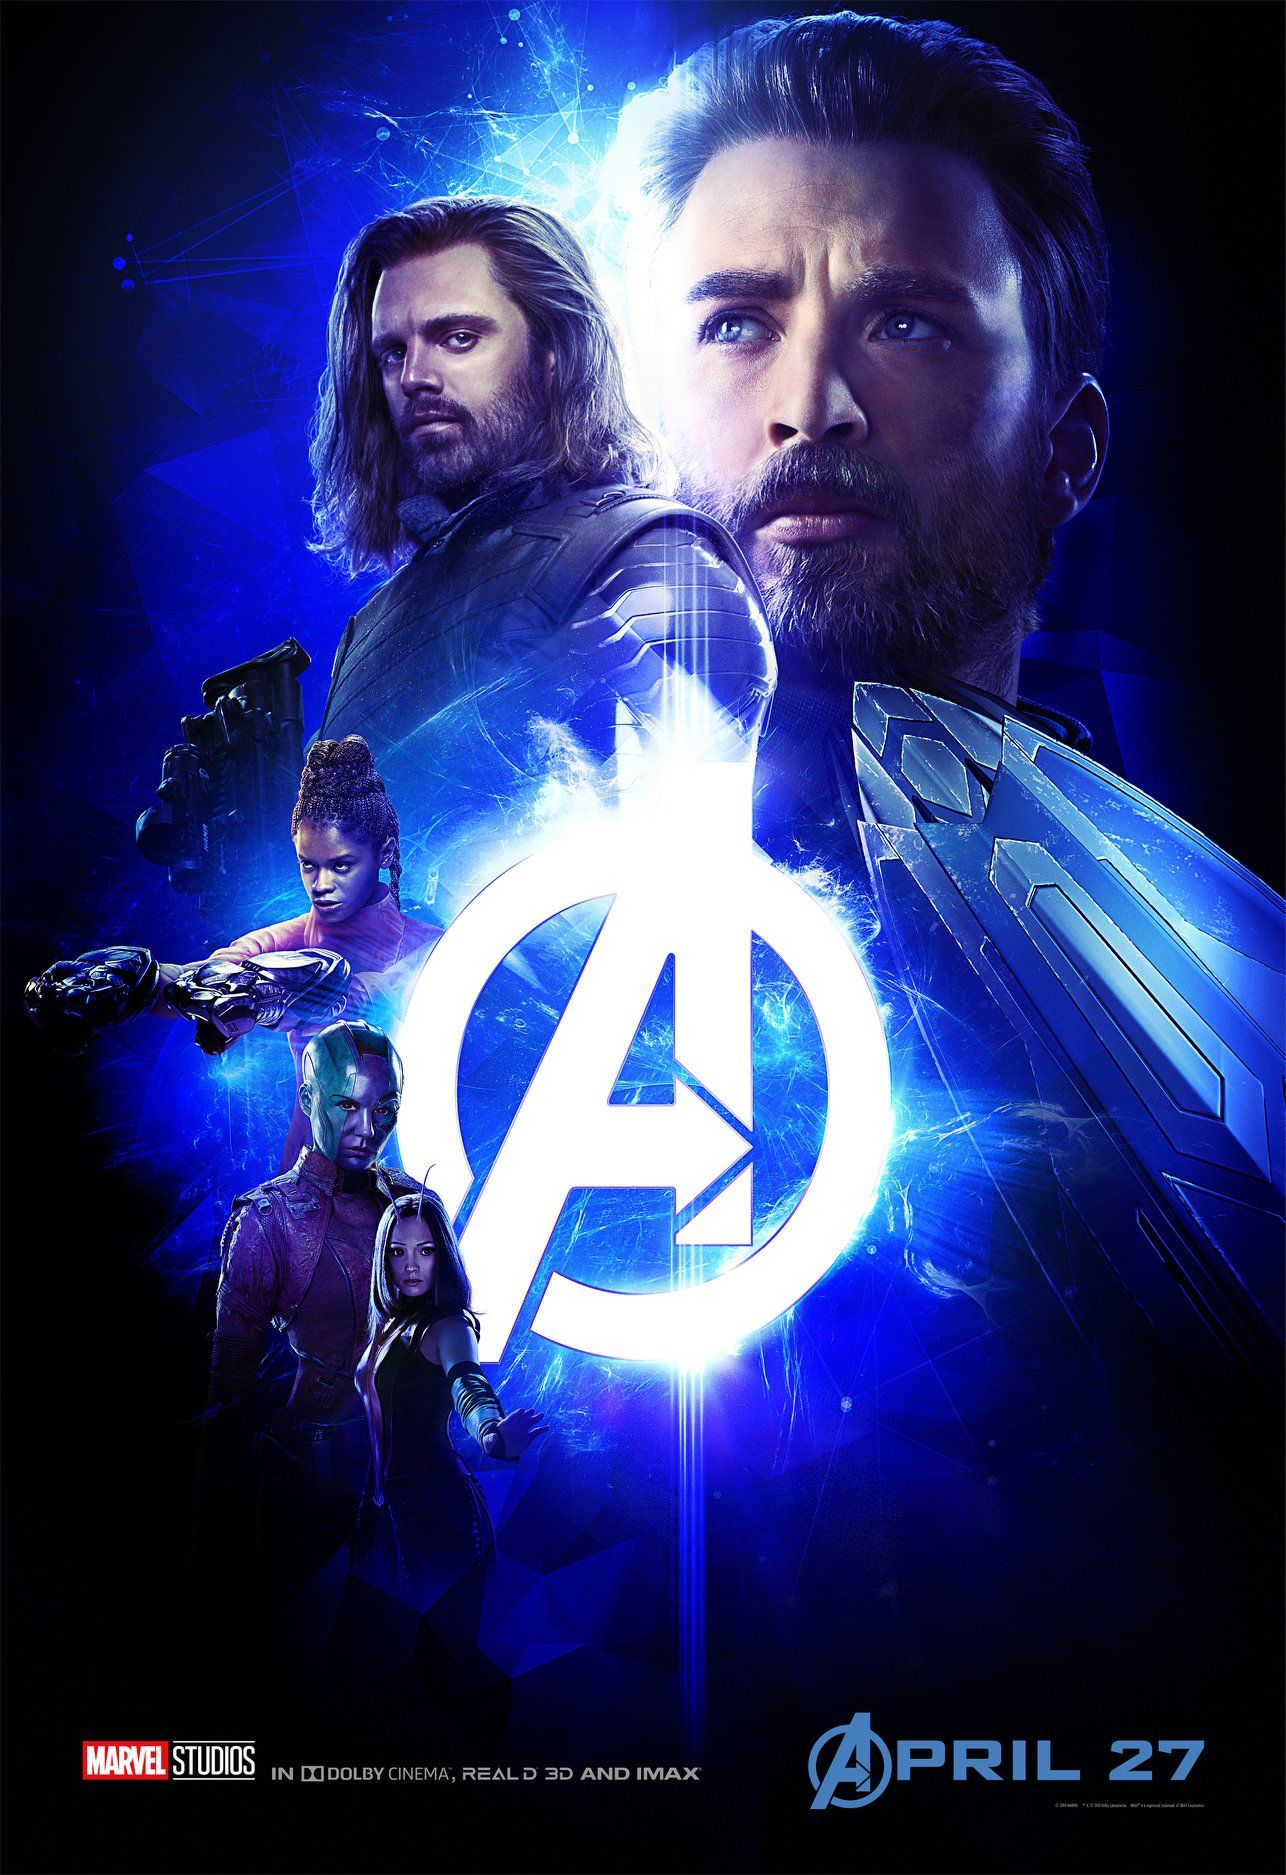 There Are Five New Avengers Infinity War Posters But They Ve Created More Questions Than Answers Marvel Films Marvel Studios New Avengers